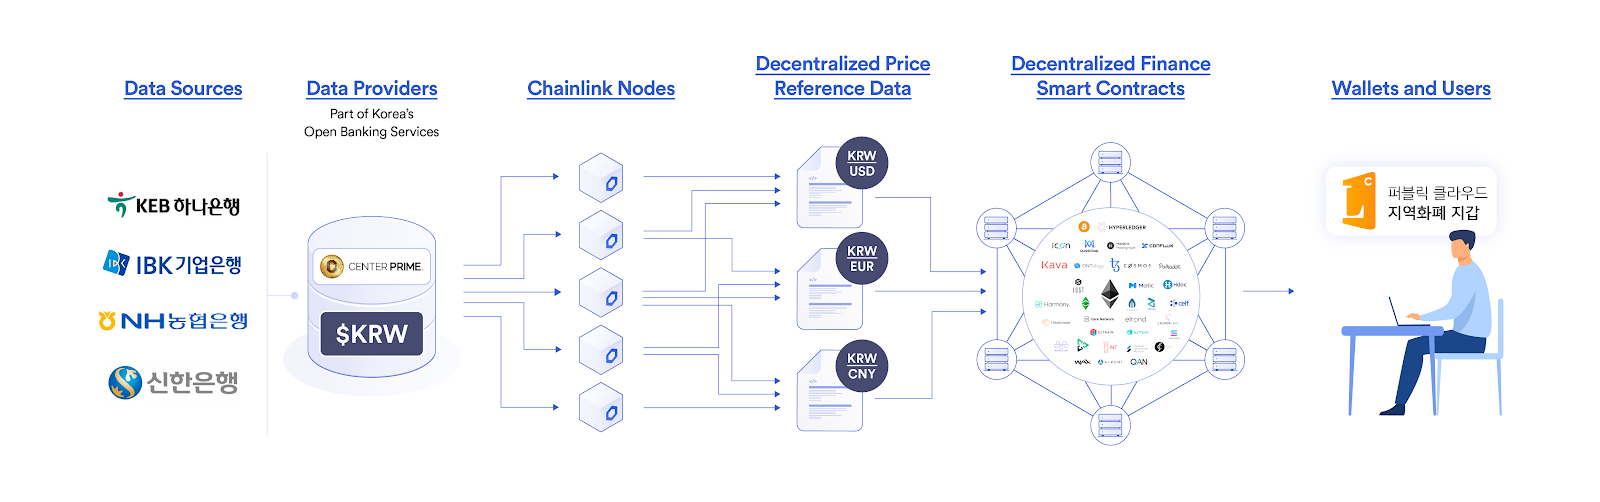 Sharing Decentralized FX Data Through Chainlink by CenterPrime